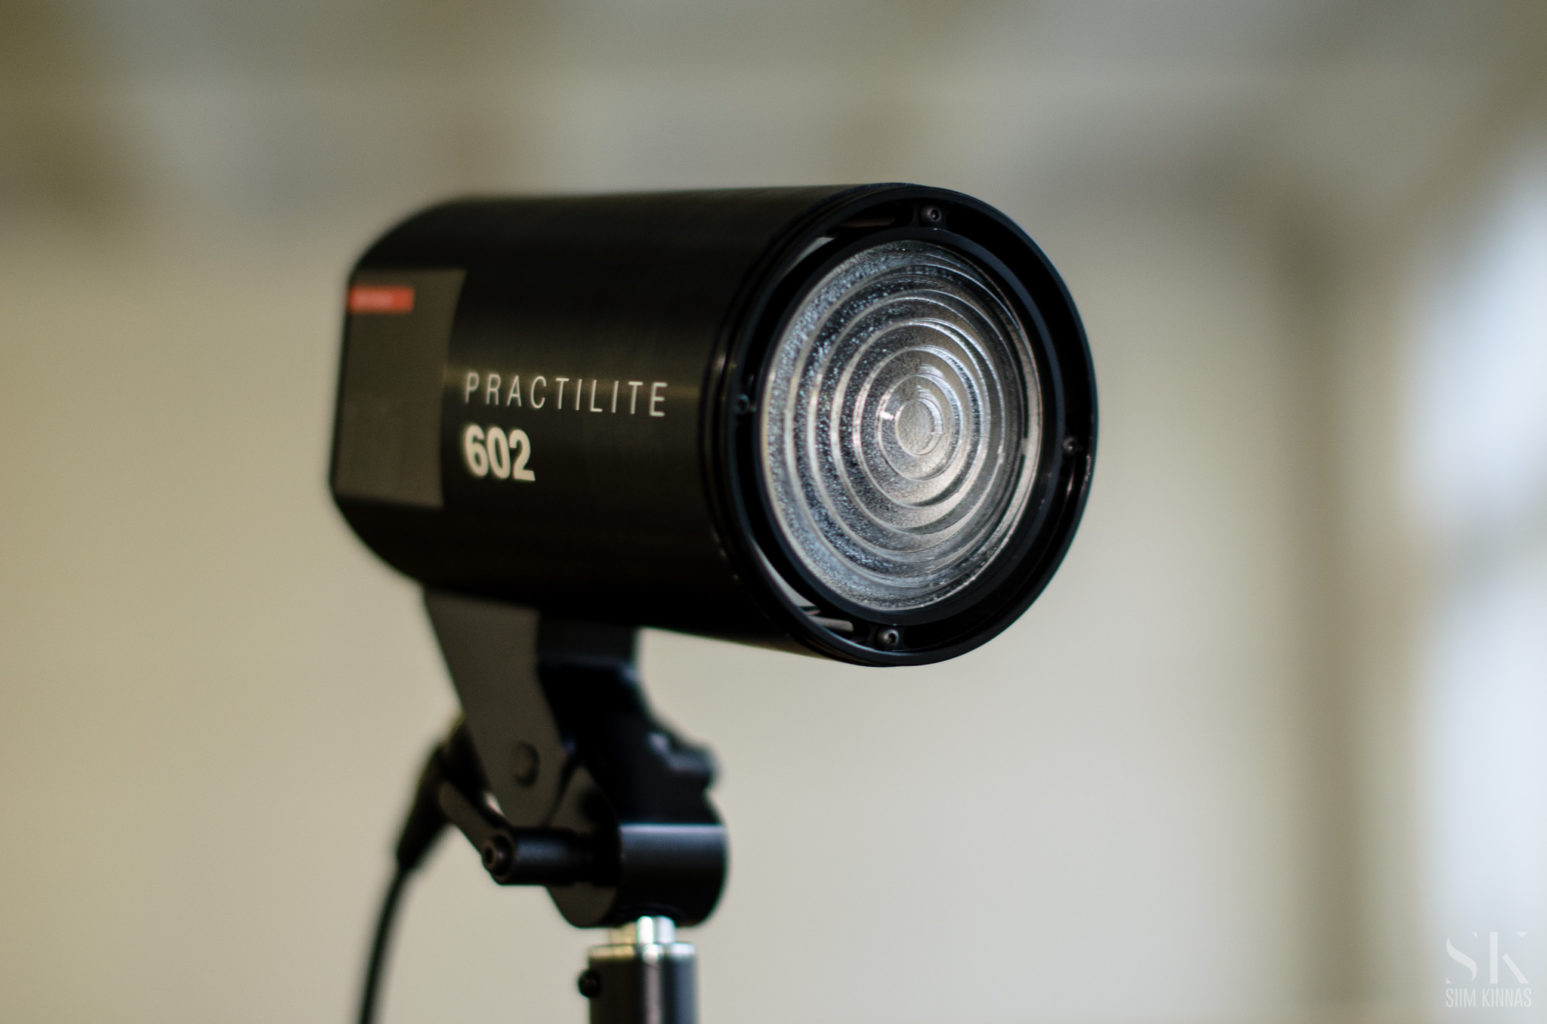 Pracitlite 602 front view